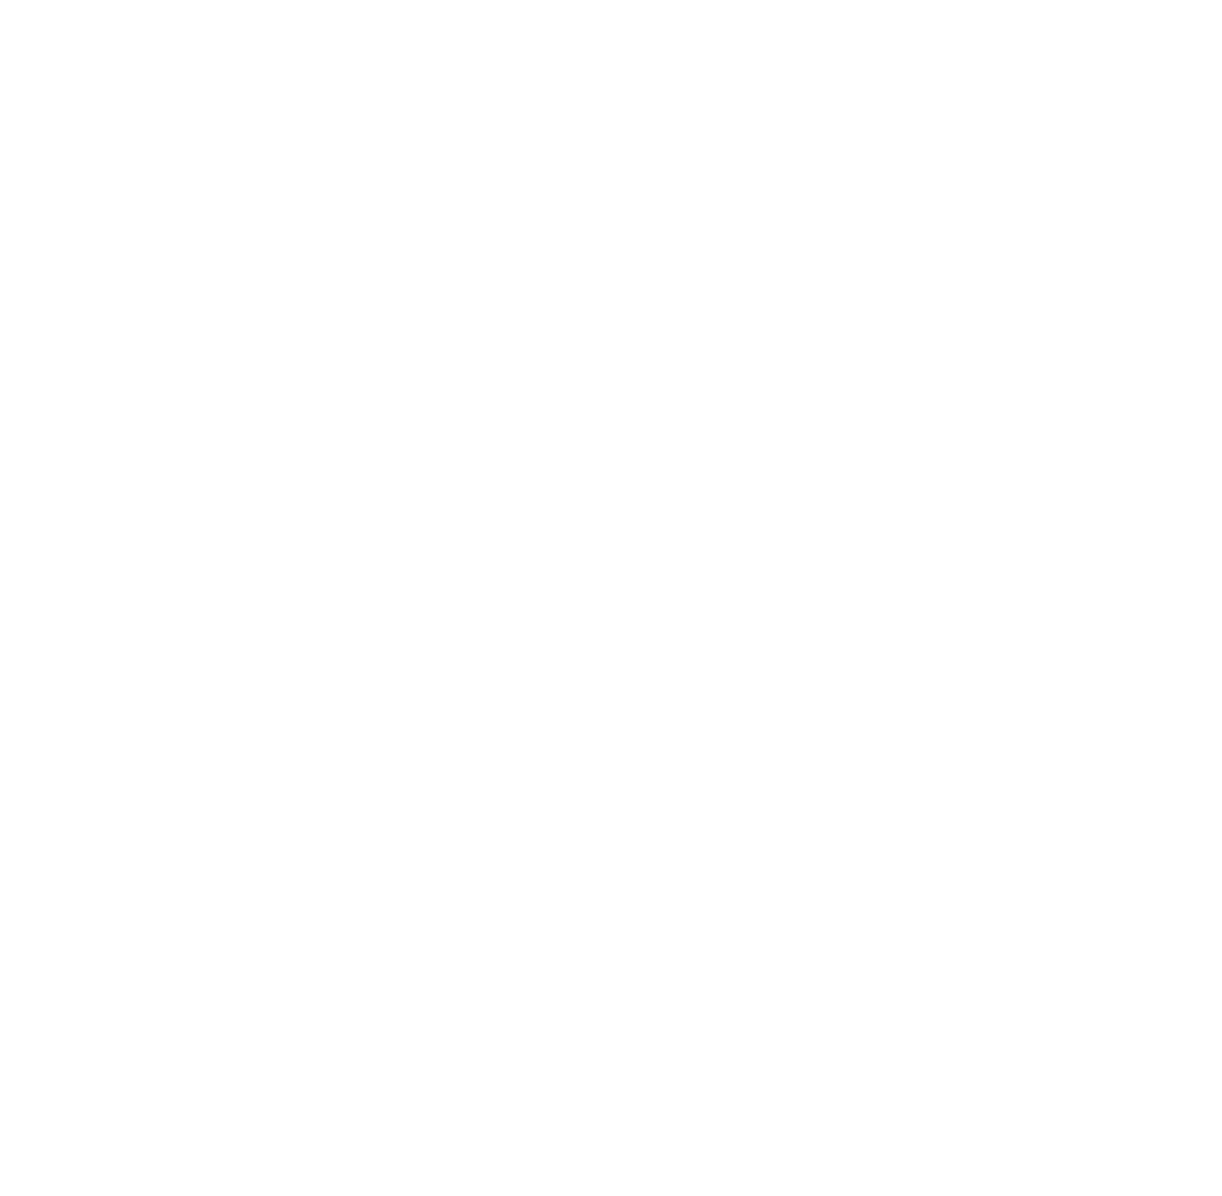 Icon - Two people sitting at a table with 1 person presenting at the head of the table